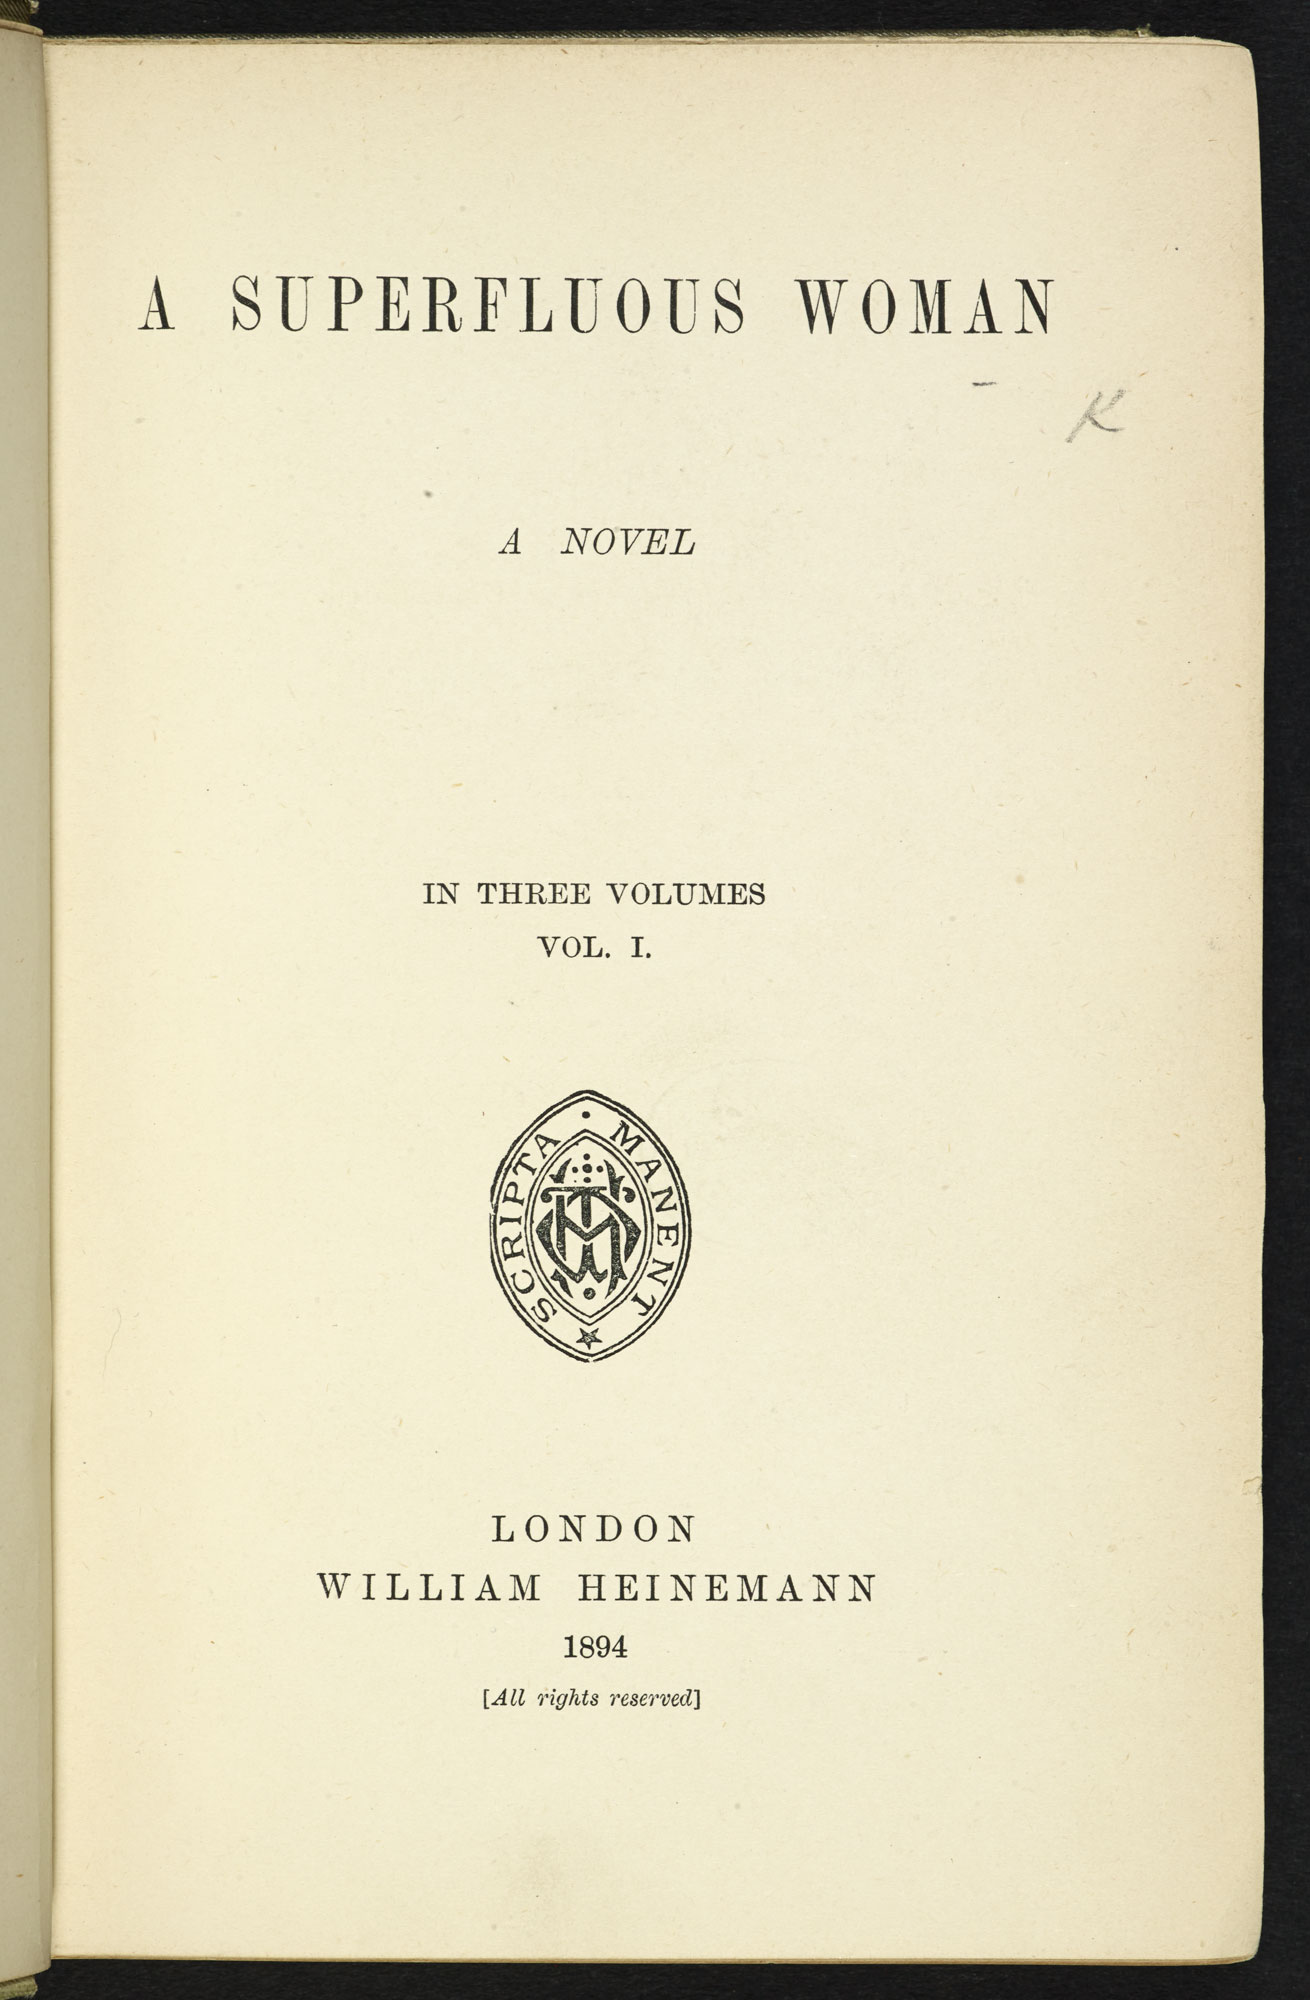 A Superfluous Woman [page: frontispiece and title page]